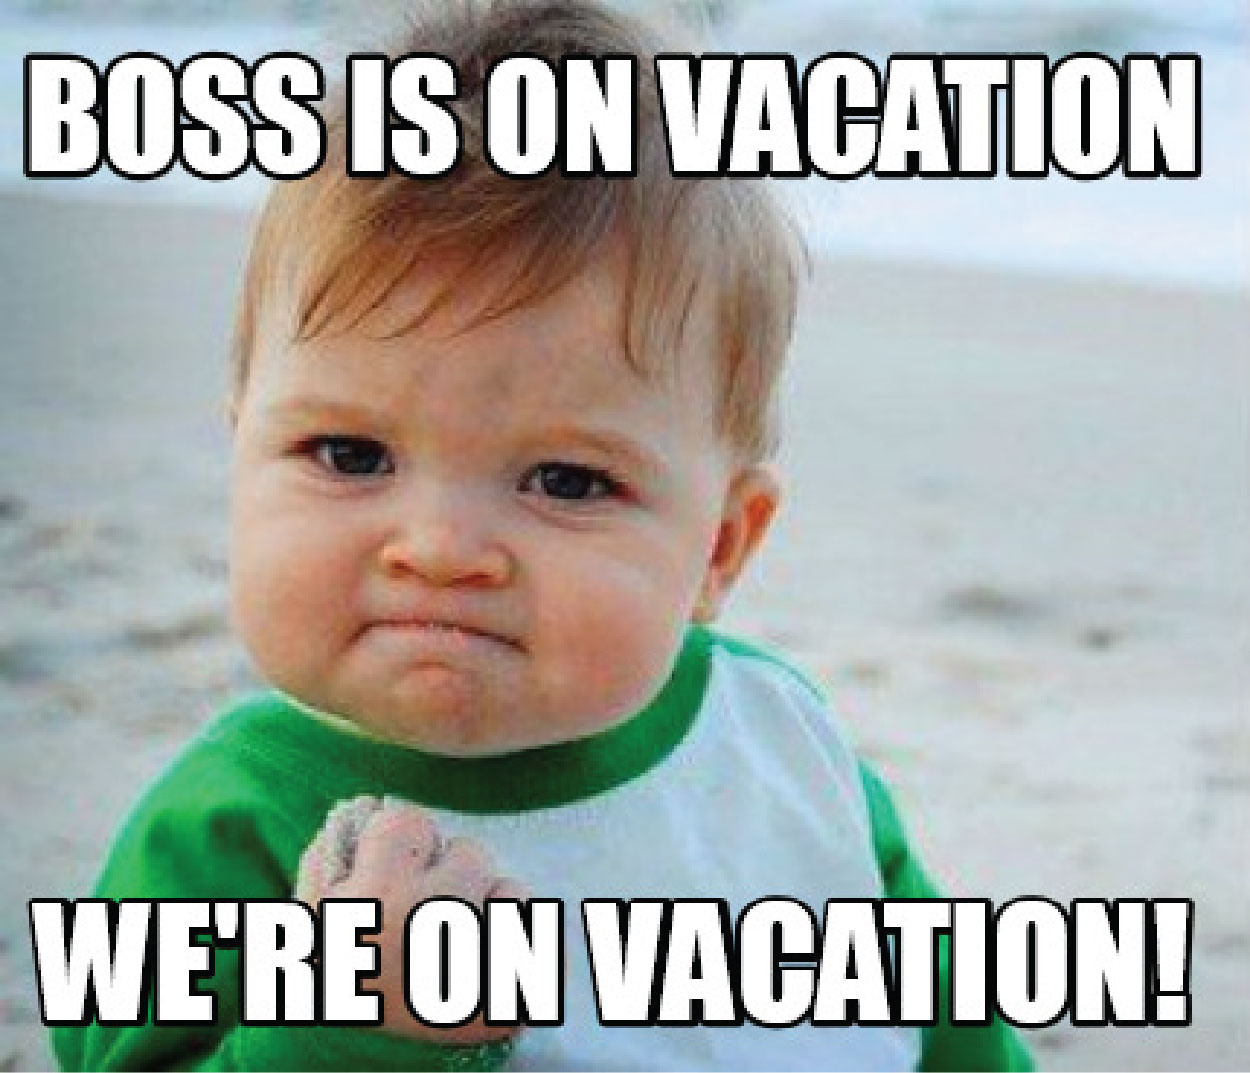 when boss is on vacation